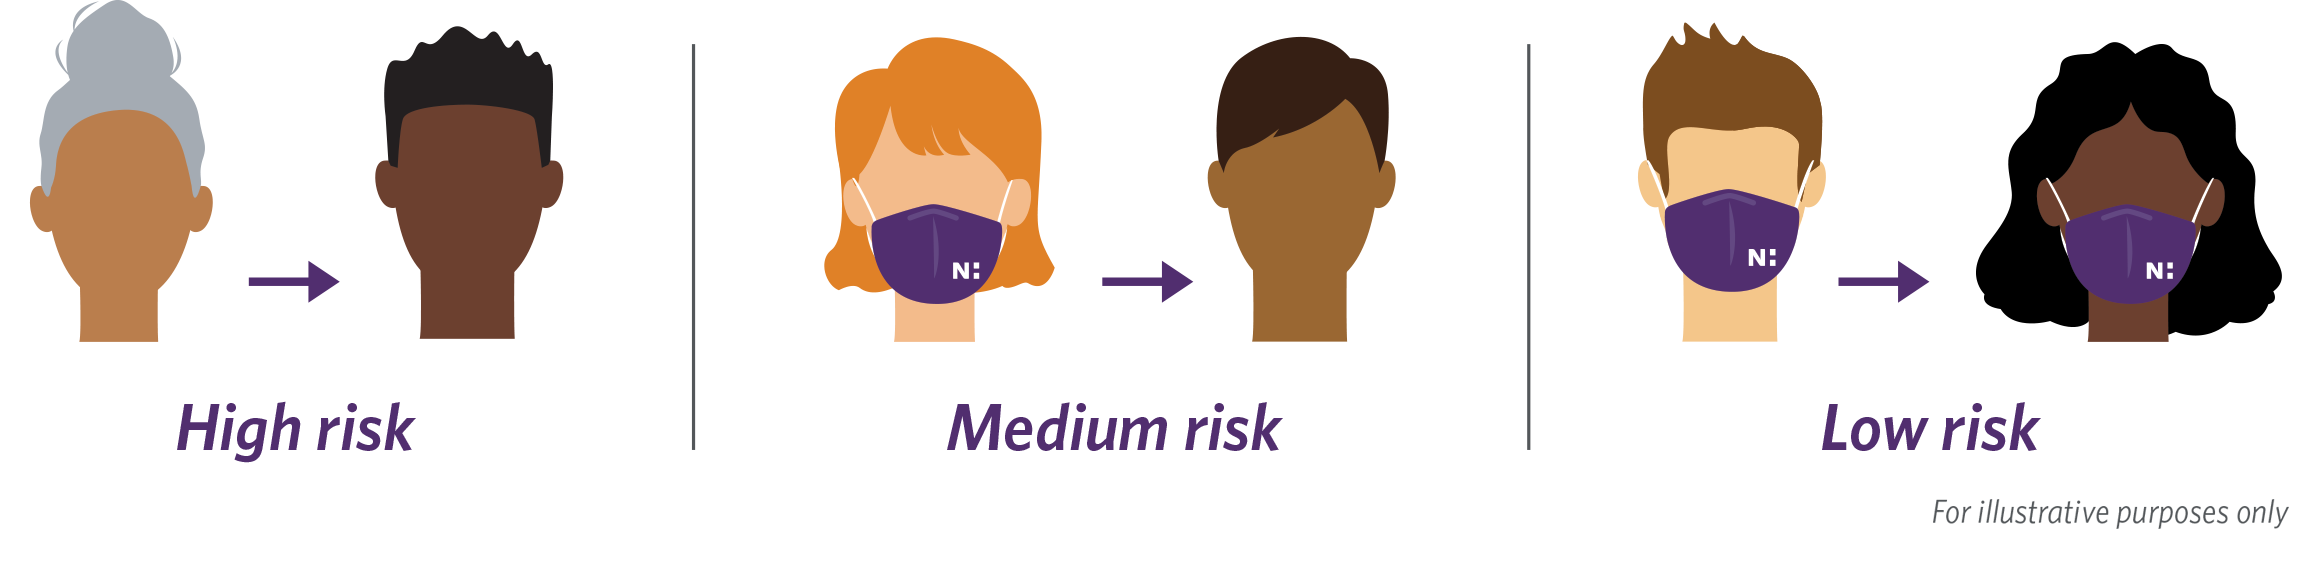 Risk levels of contracting coronavirus when wearing a mask